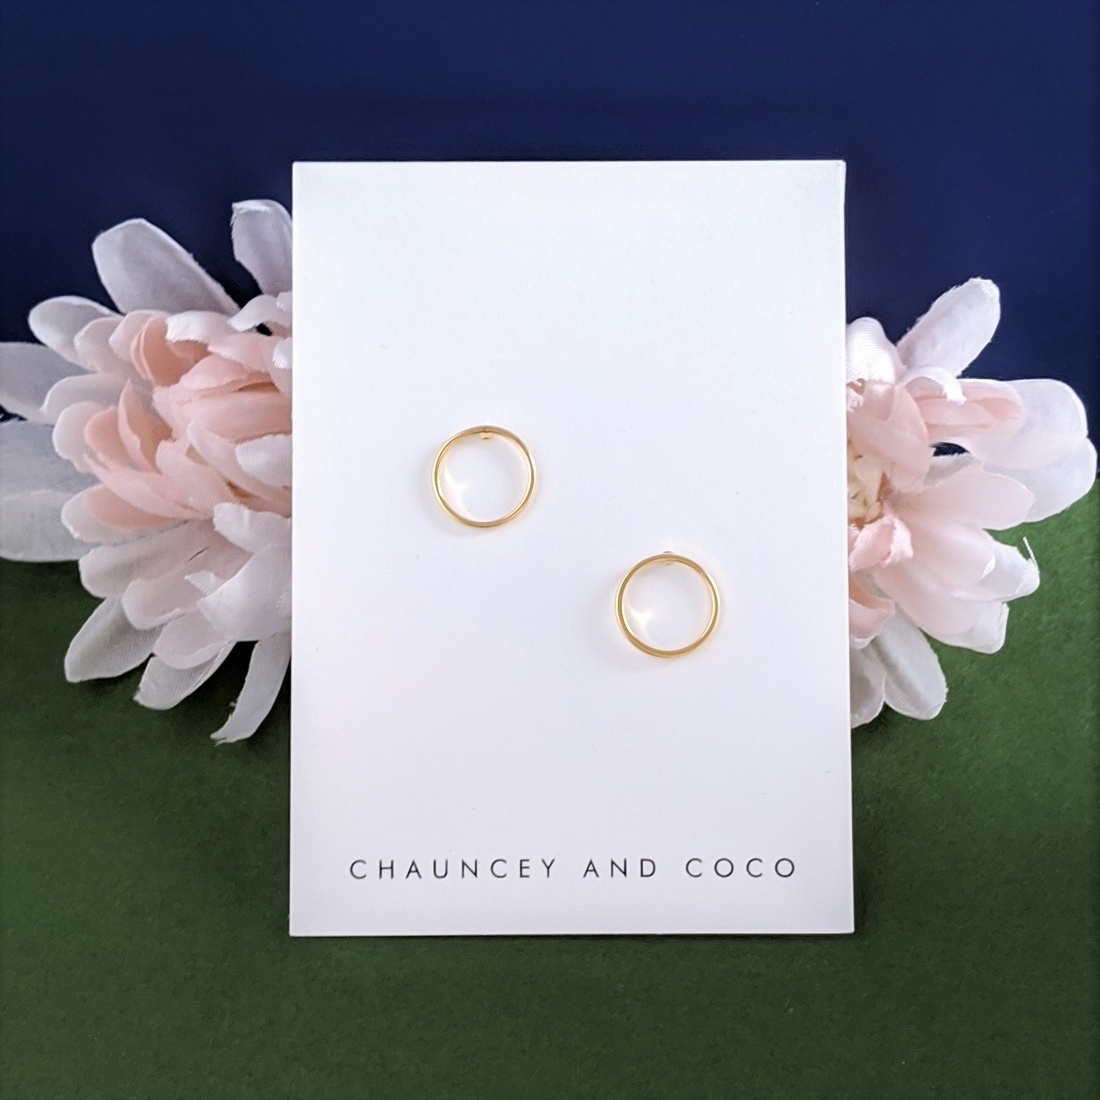 Chauncey and Coco Gold Circle Outline Stud Earrings